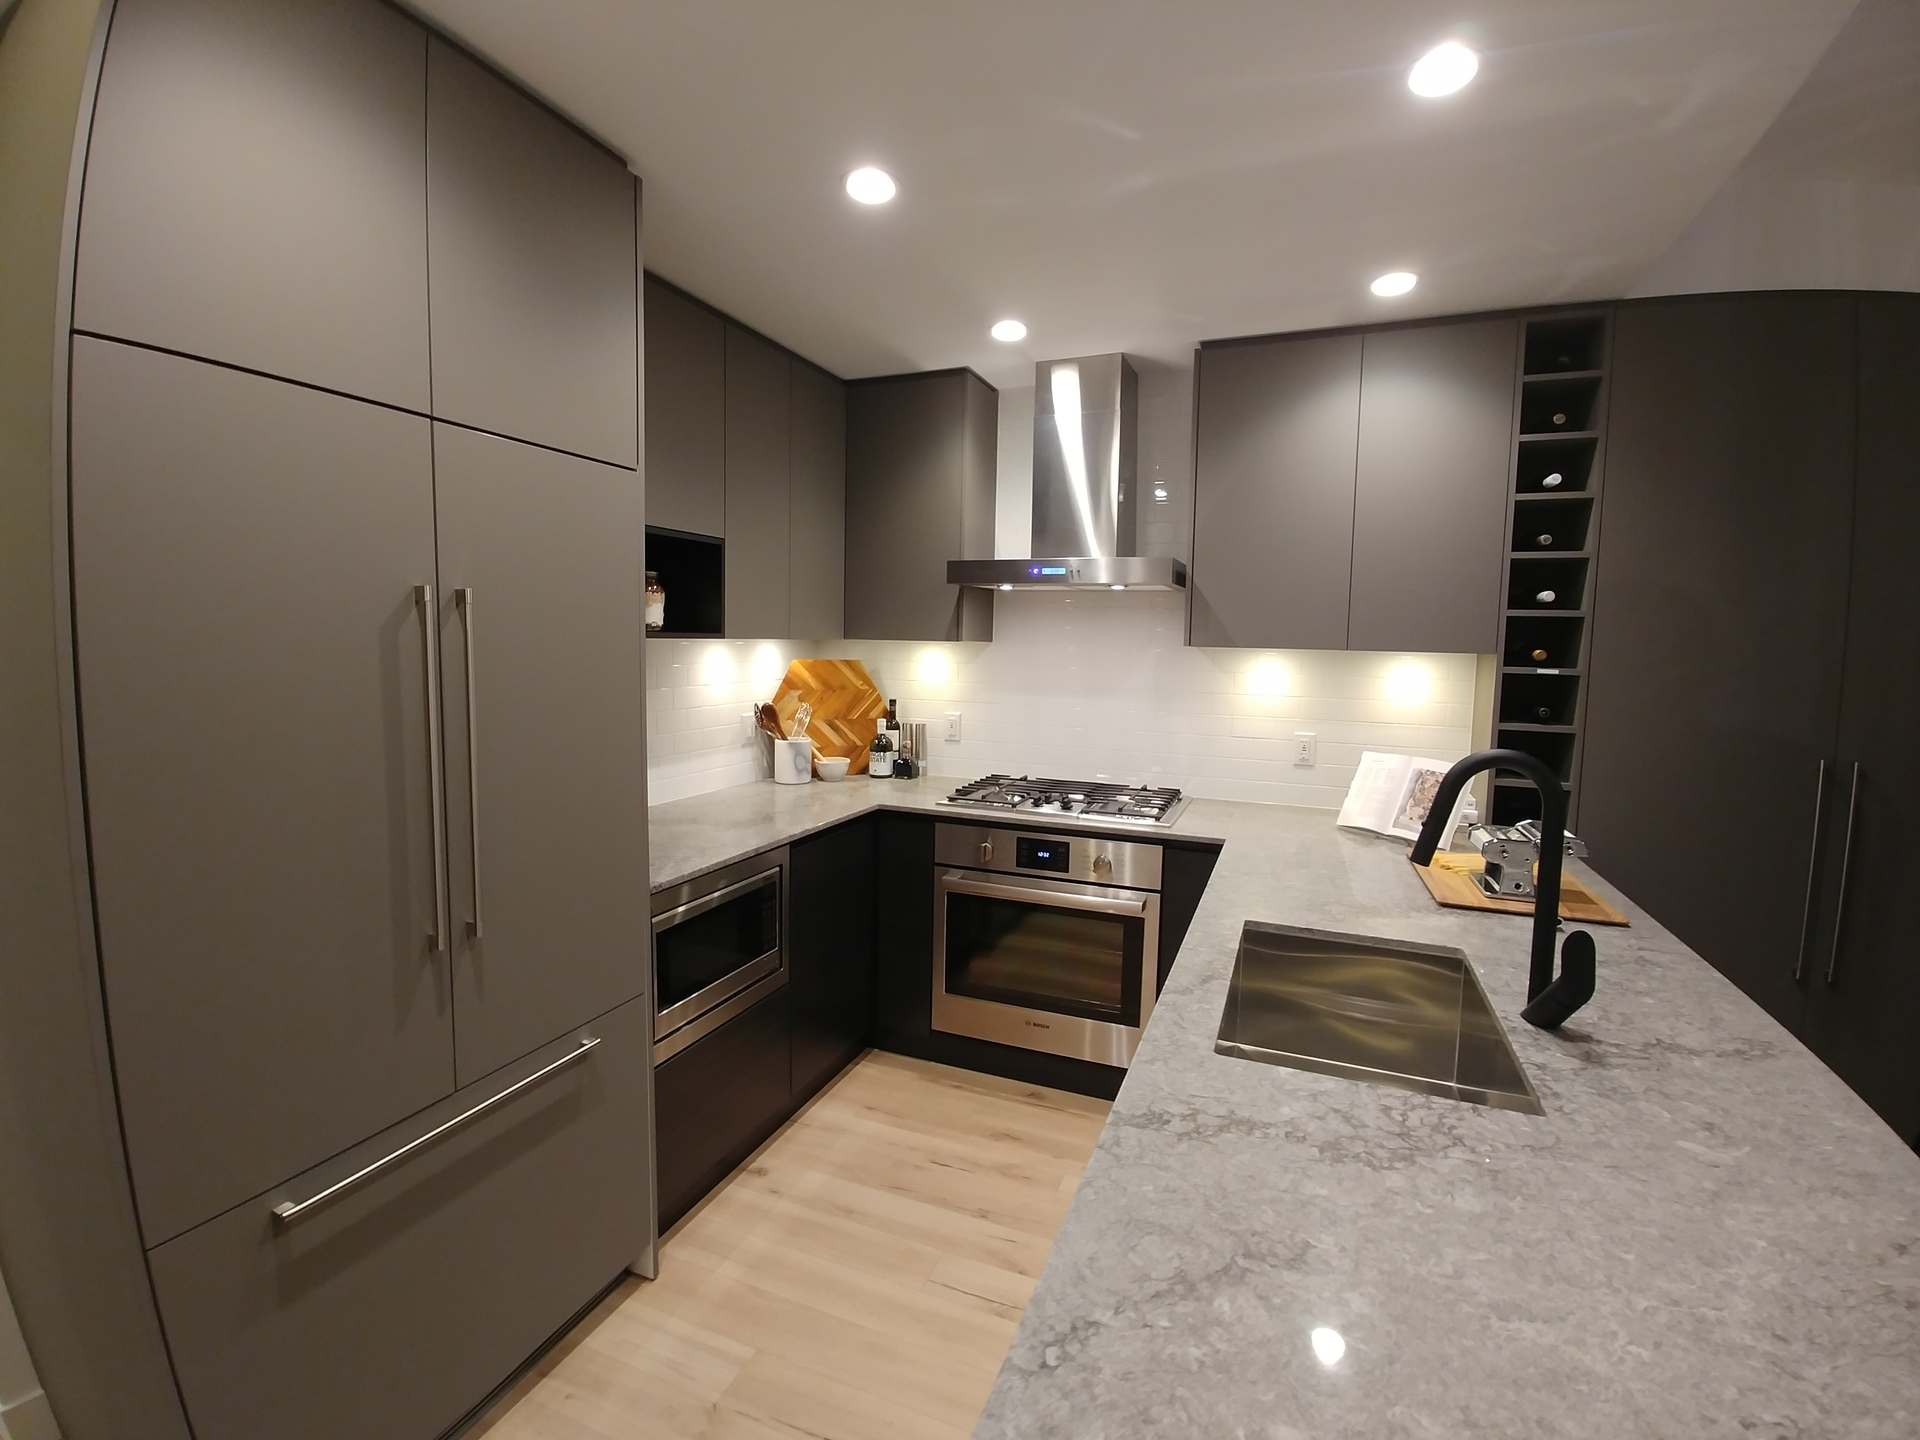 50-electronic-kitchen-dark-colour-scheme at 50 Electronic Phase 1 and 2 (50 Electronic Avenue, Port Moody Centre, Port Moody)